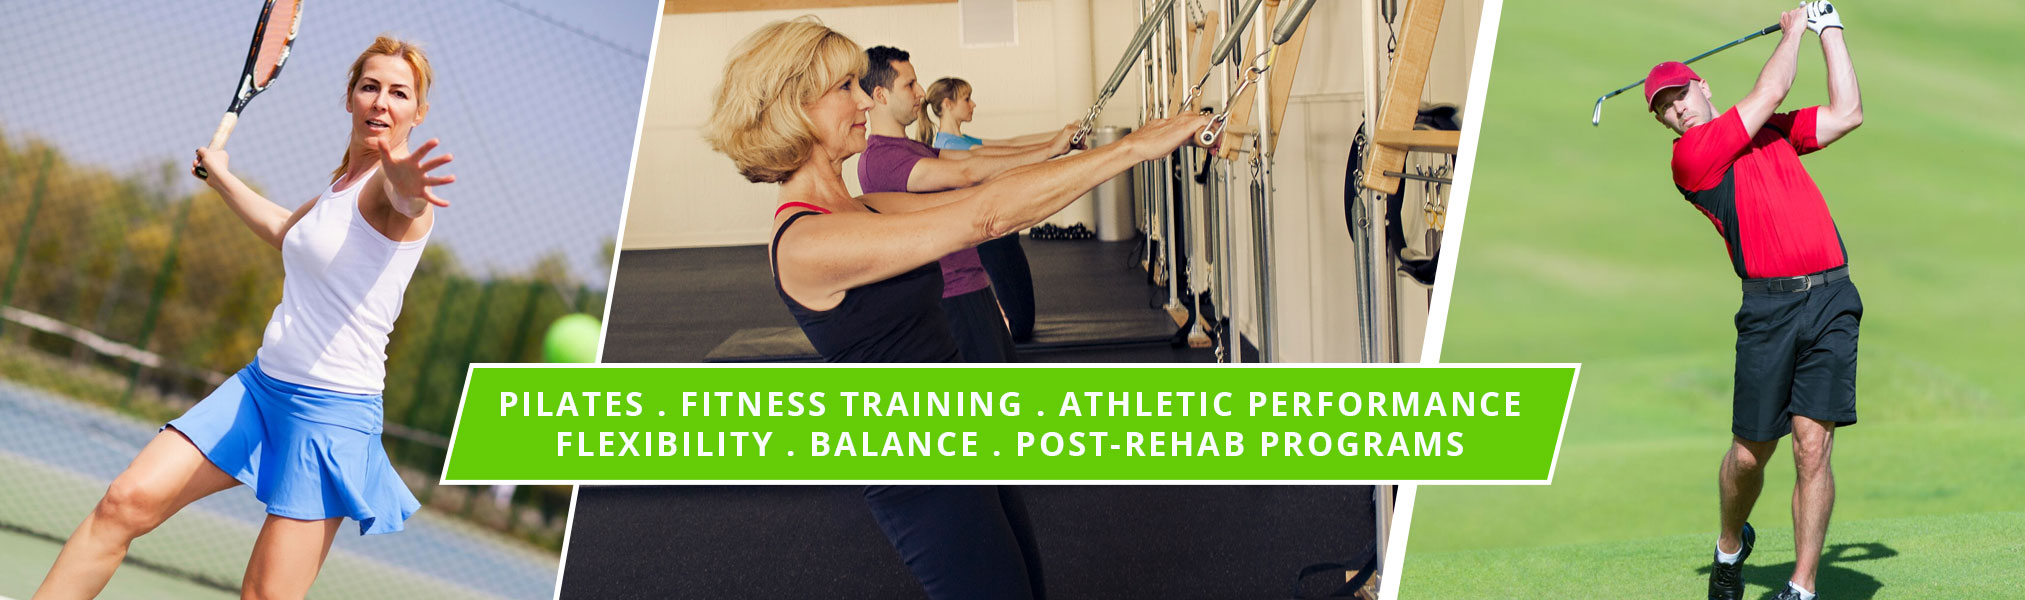 Pilates, Fitness Training, Athletic Performance, Flexibility, Balance, Post-rehab Programs